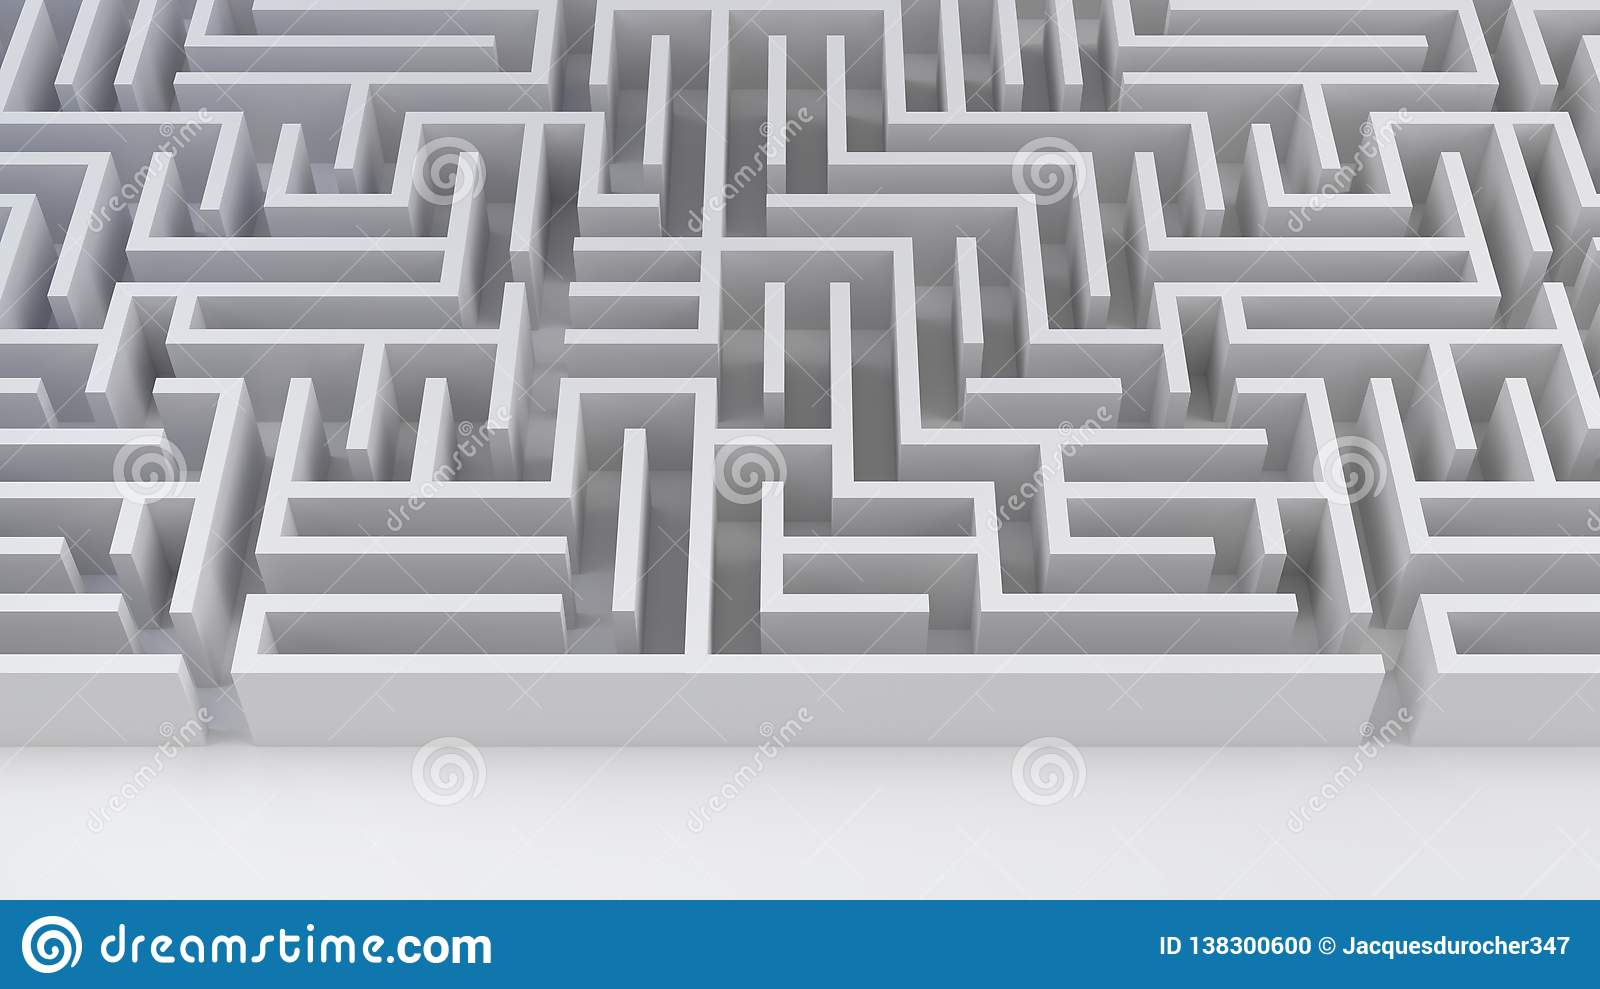 Maze labyrinth problem and solution business strategy success difficulty 3D illustration